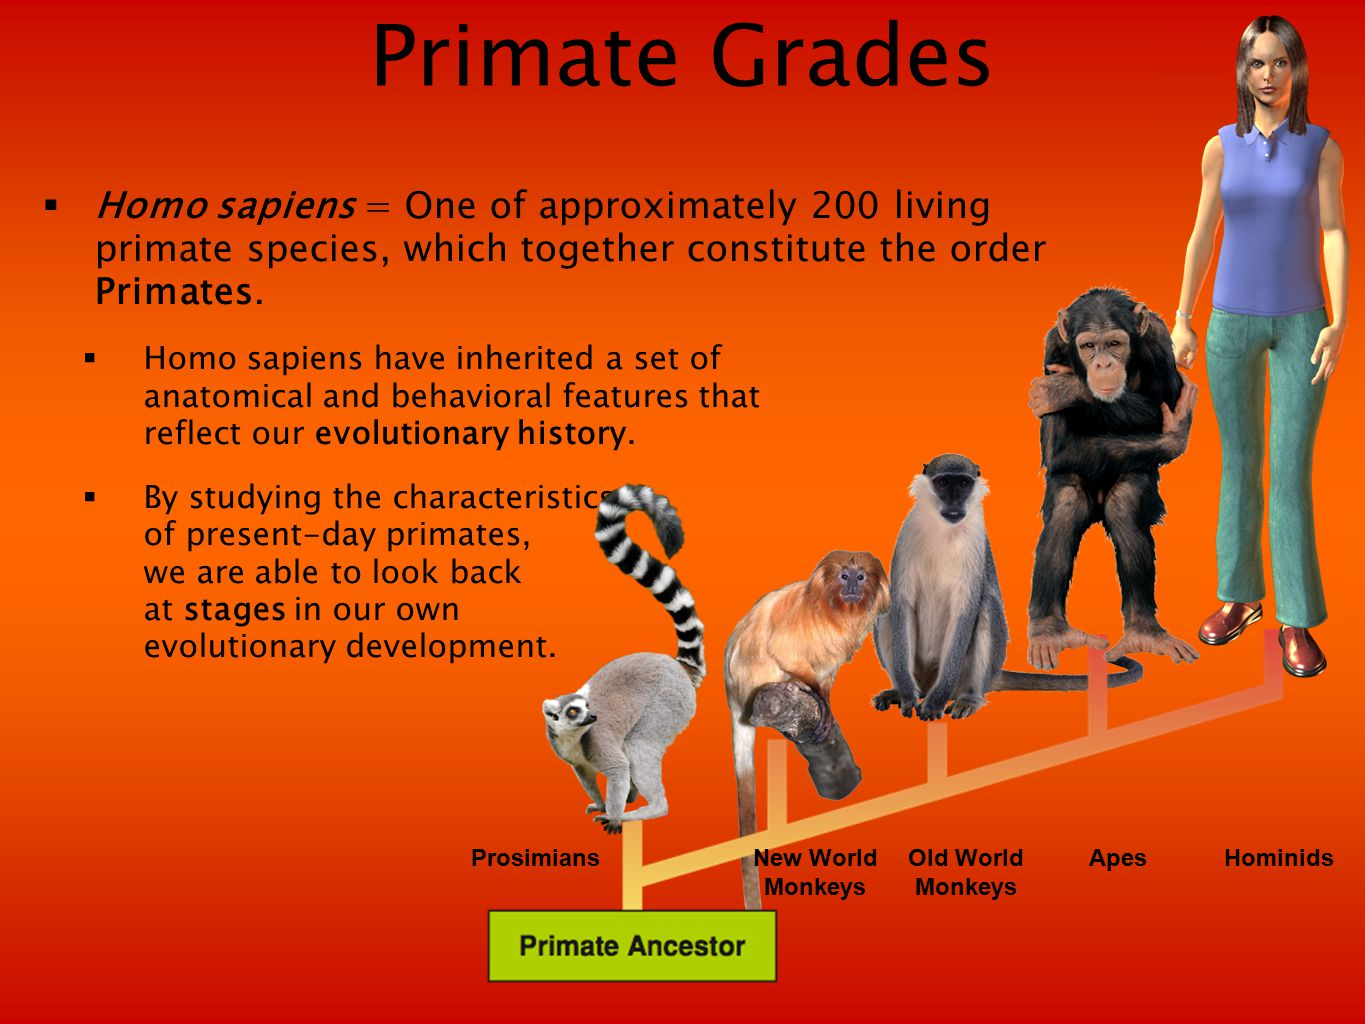 Classifications Can Change… Pre 1980 hominid had the same meaning that hominin now has… Hominid has now been designated a broader meaning (including Great Apes and their ancestors).